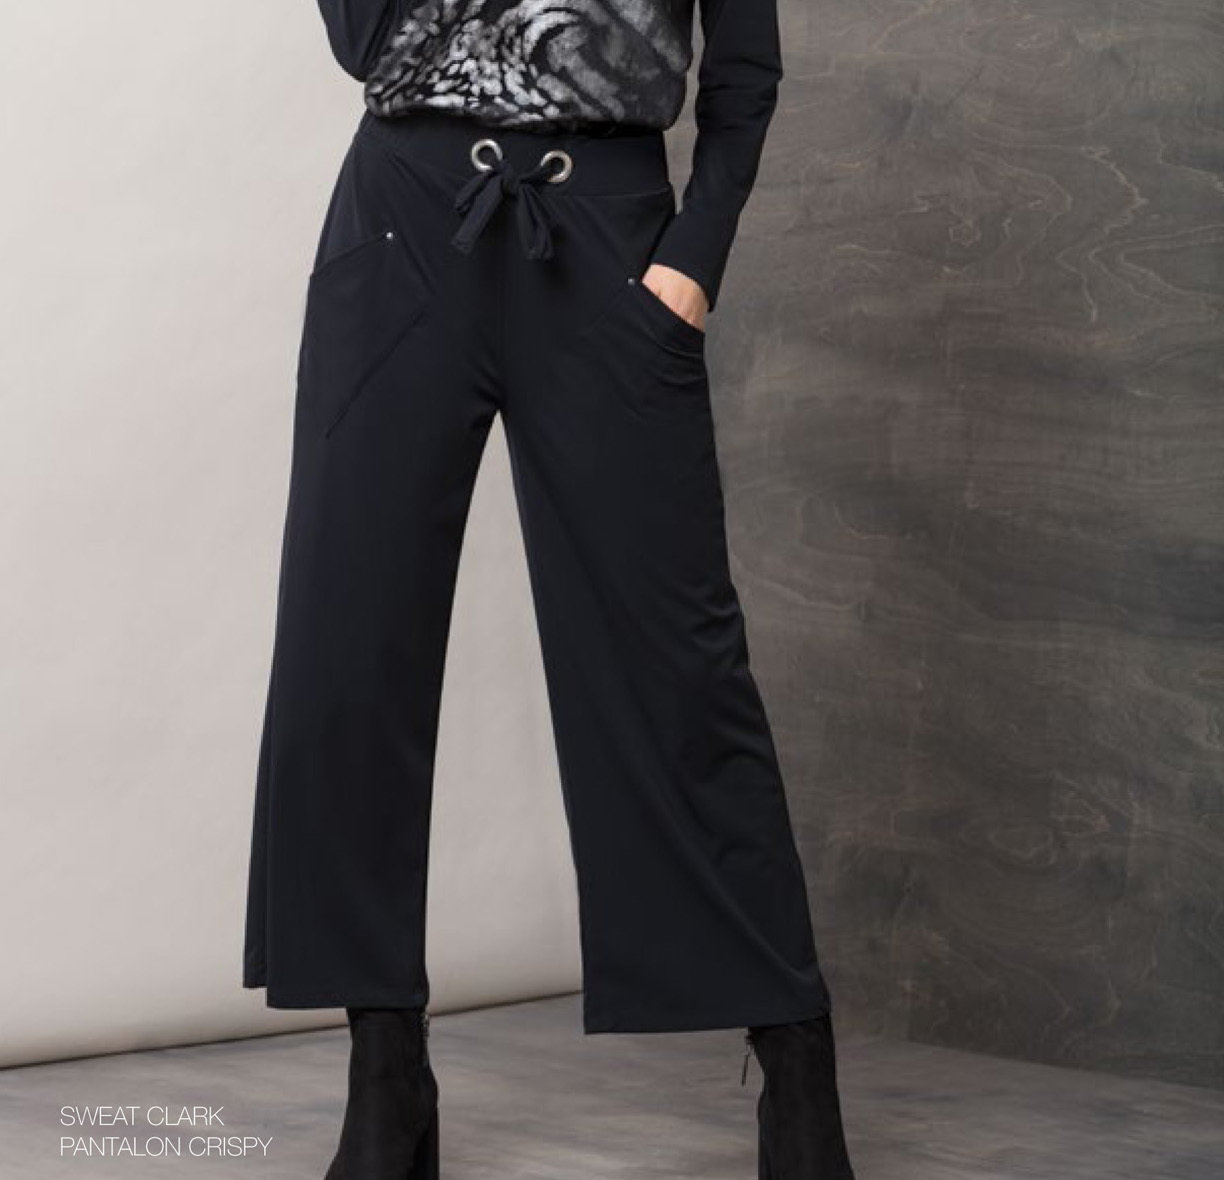 Maloka: Crisp Comfort Wide Leg Pocket Pant (More Colors!) MK_CRISPY_N